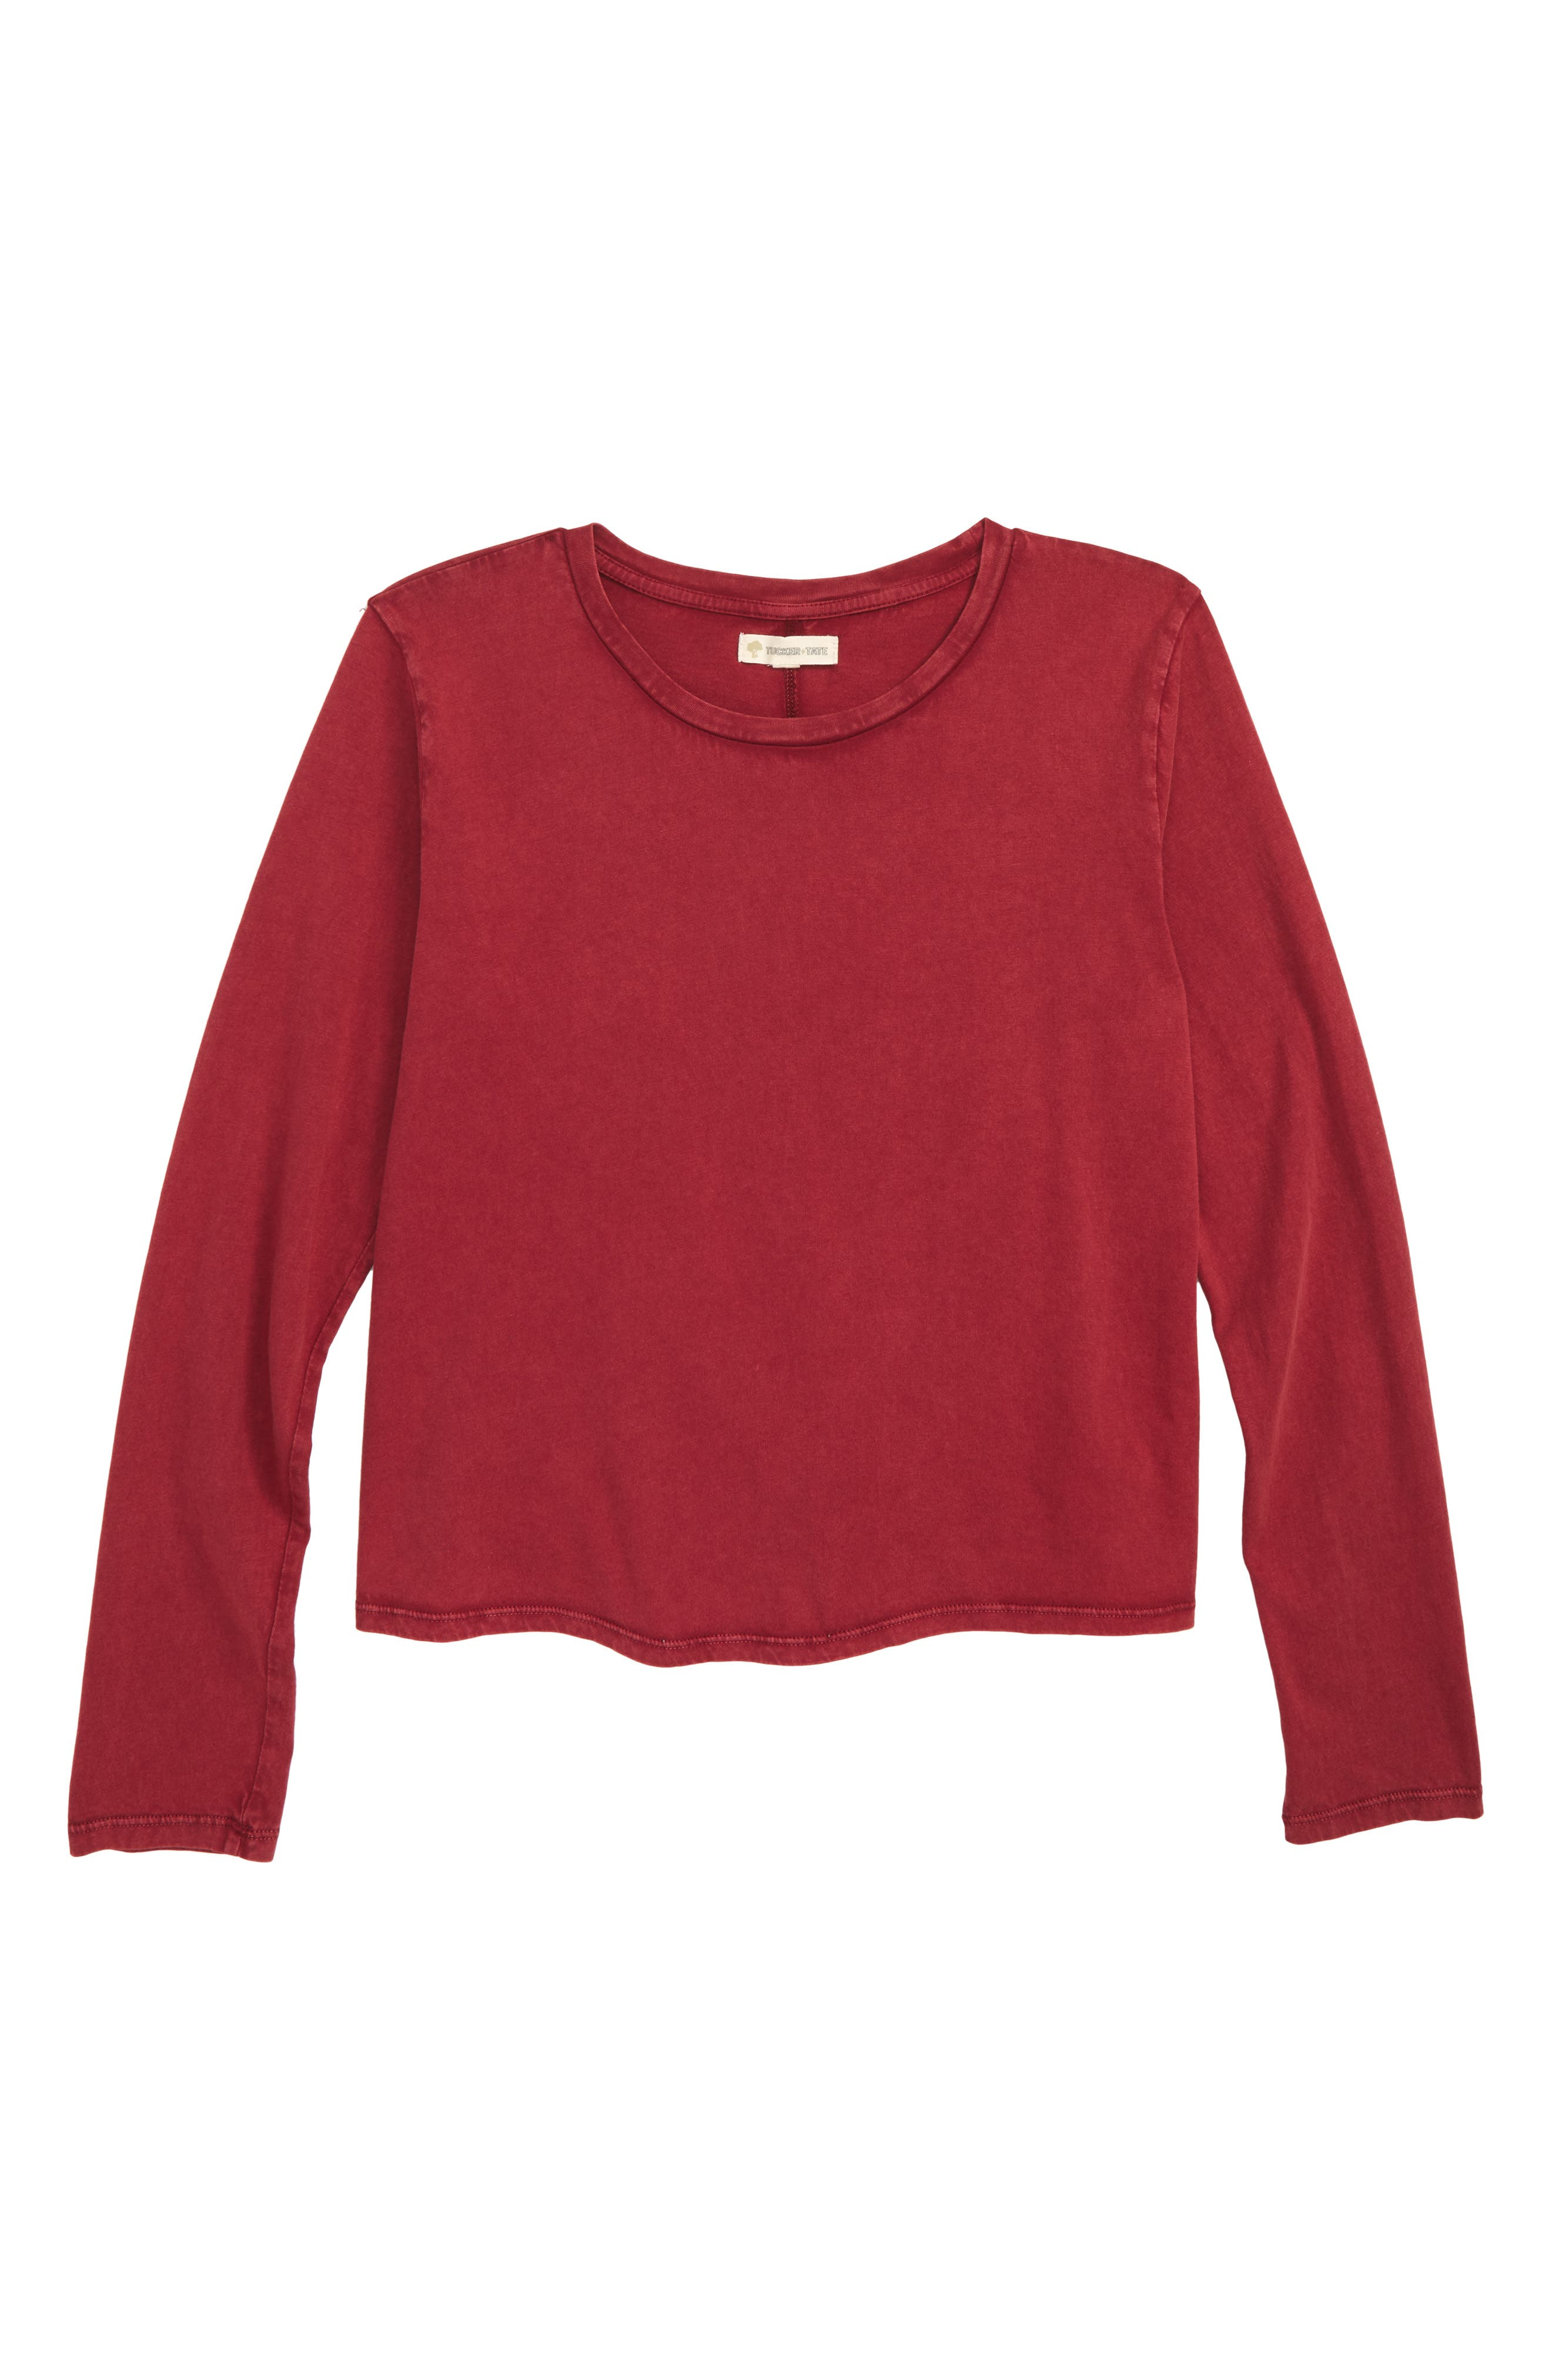 Girls Tucker  Tate Knot Back Washed Tee Size L (1012)  Red